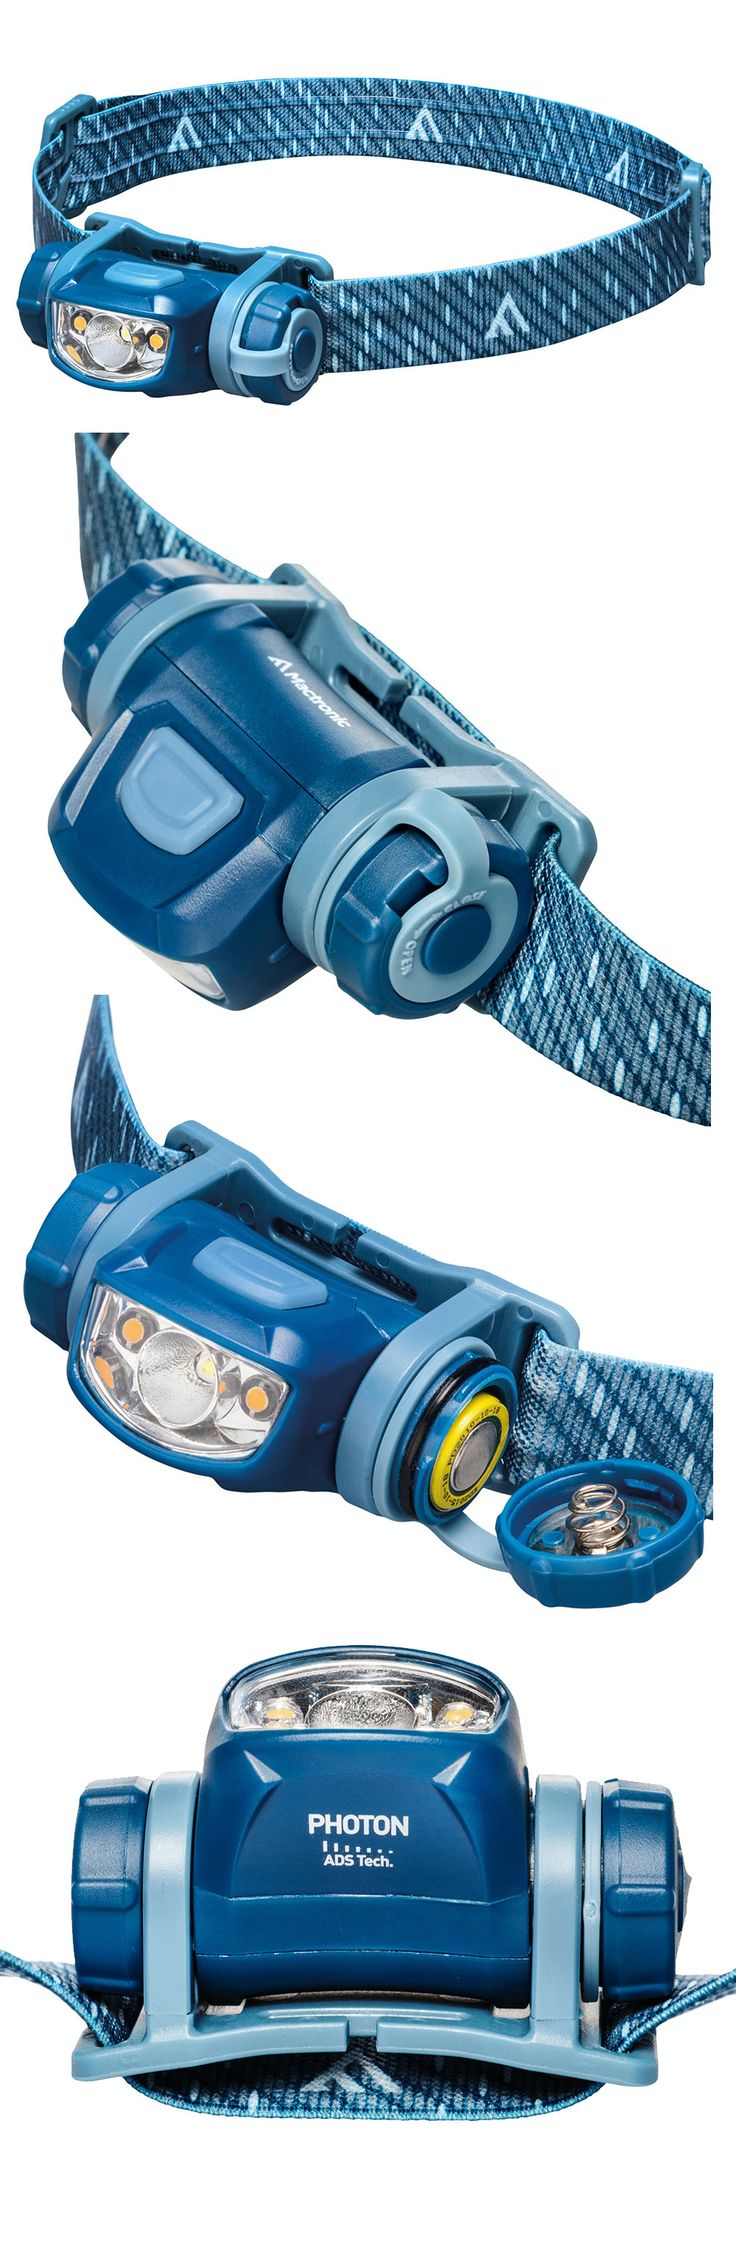 "The phenomenal PHOTON headlamp is light years ahead for compactness and performance. Its small size hosts giant features, including dual diodes for both a 90 lm spot beam and an anti-glare warm LED, Switch-Lock function to prevent battery drain and our ""Advanced Dimming System"" (ADS) for smooth brightness control. Powered by a single AA battery, the water resistant and shock proof Photon is fabulous. mactronic.pl"